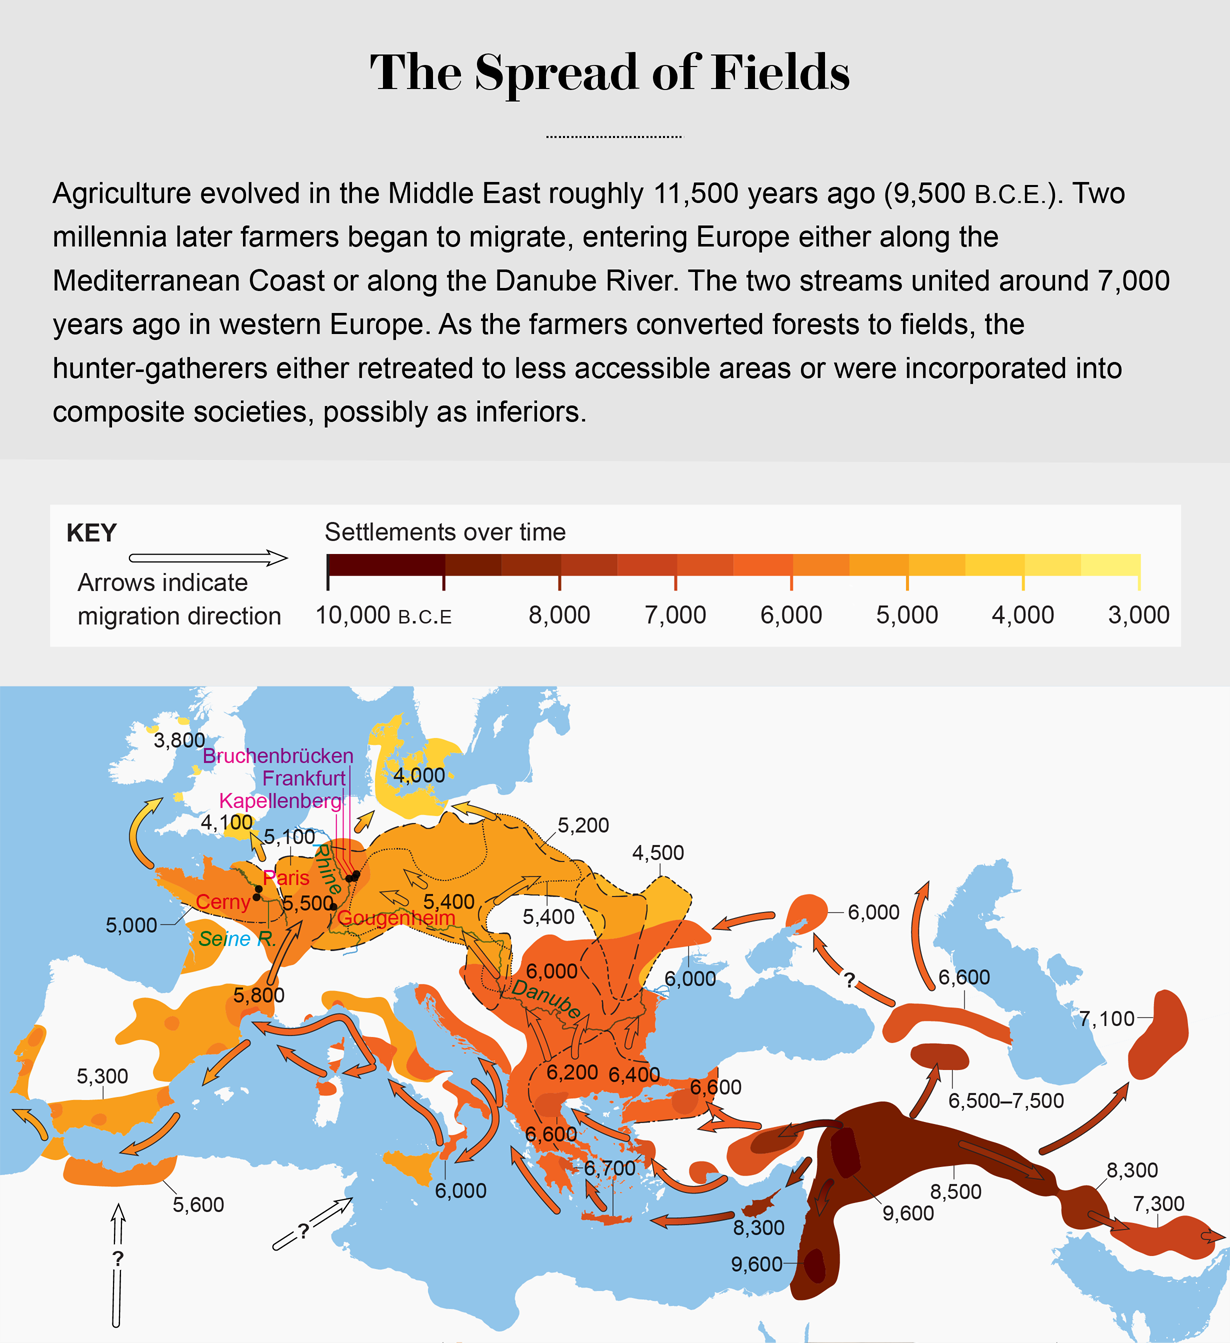 Map shows early farmers migration routes from the Middle East through Europe